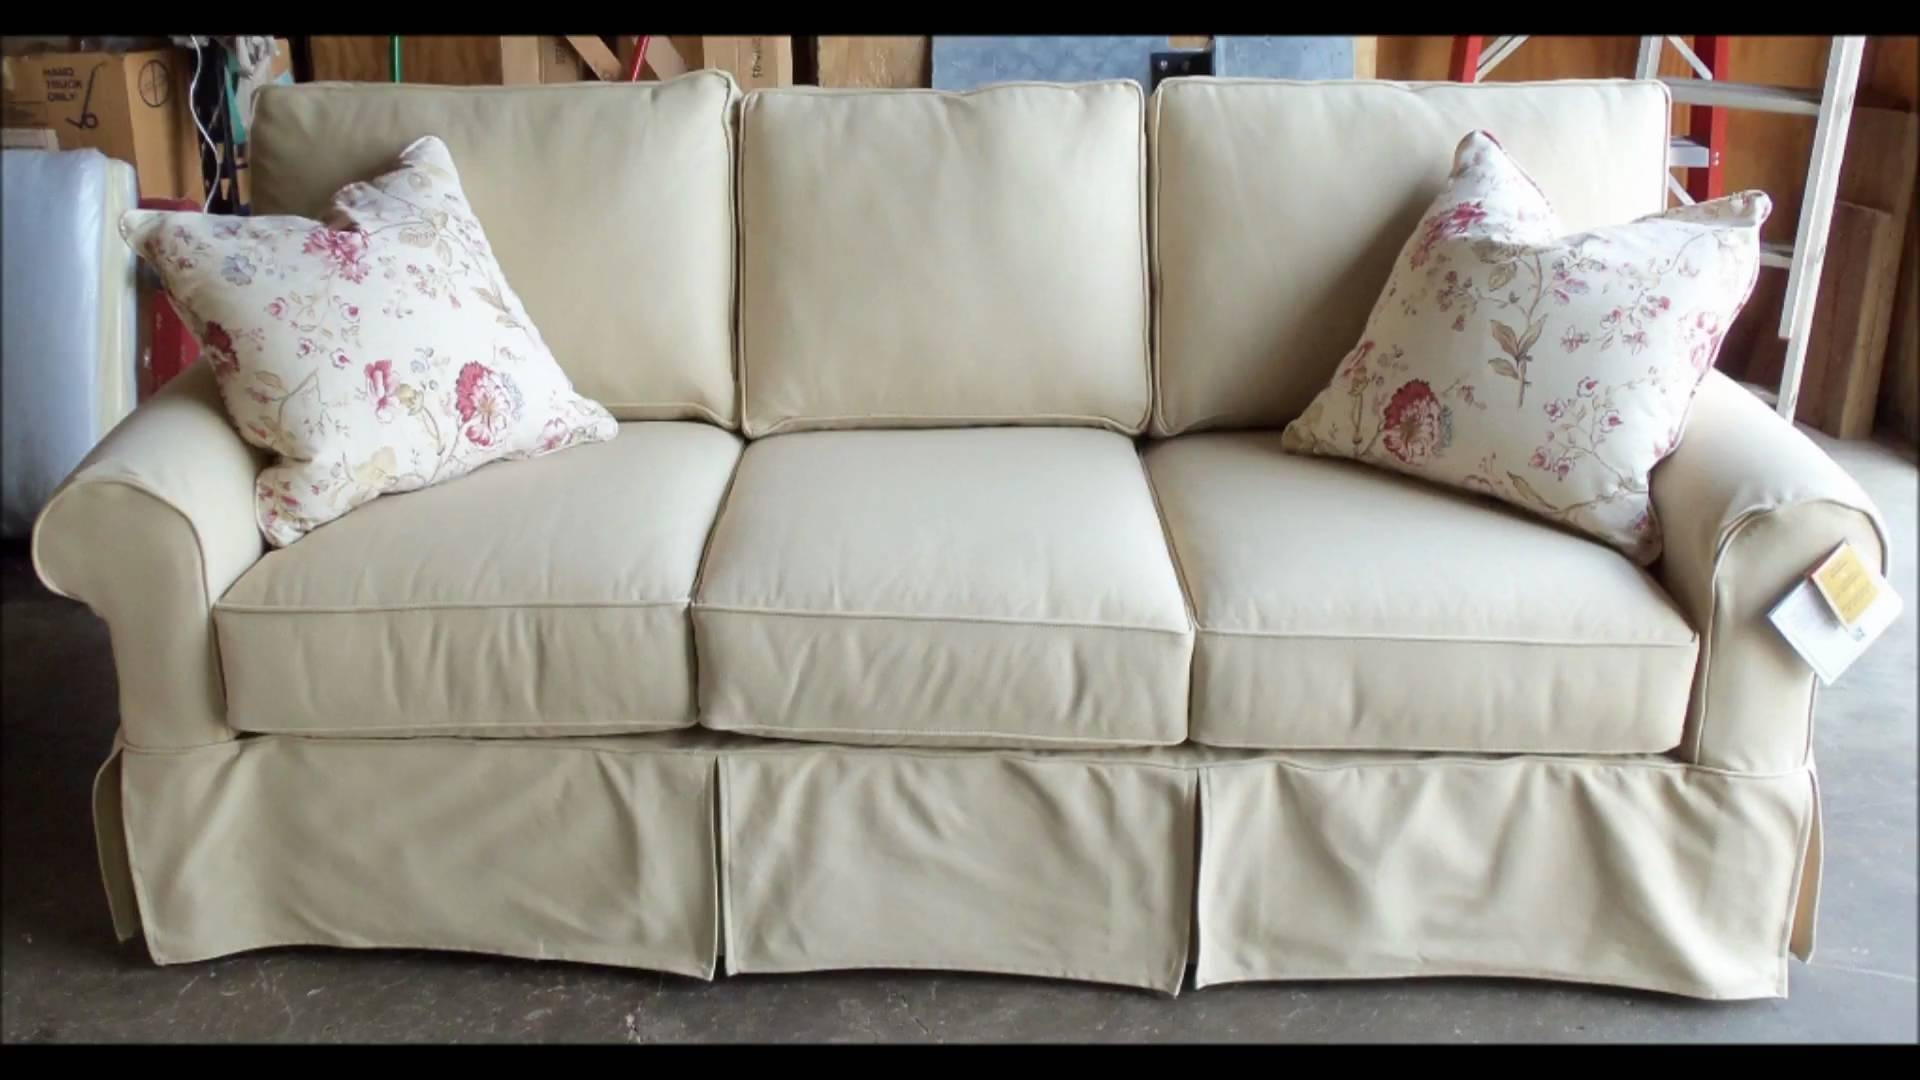 Decorating: Exciting White Rowe Furniture Slipcovers With Within Slipcovers For Chairs And Sofas (View 5 of 15)